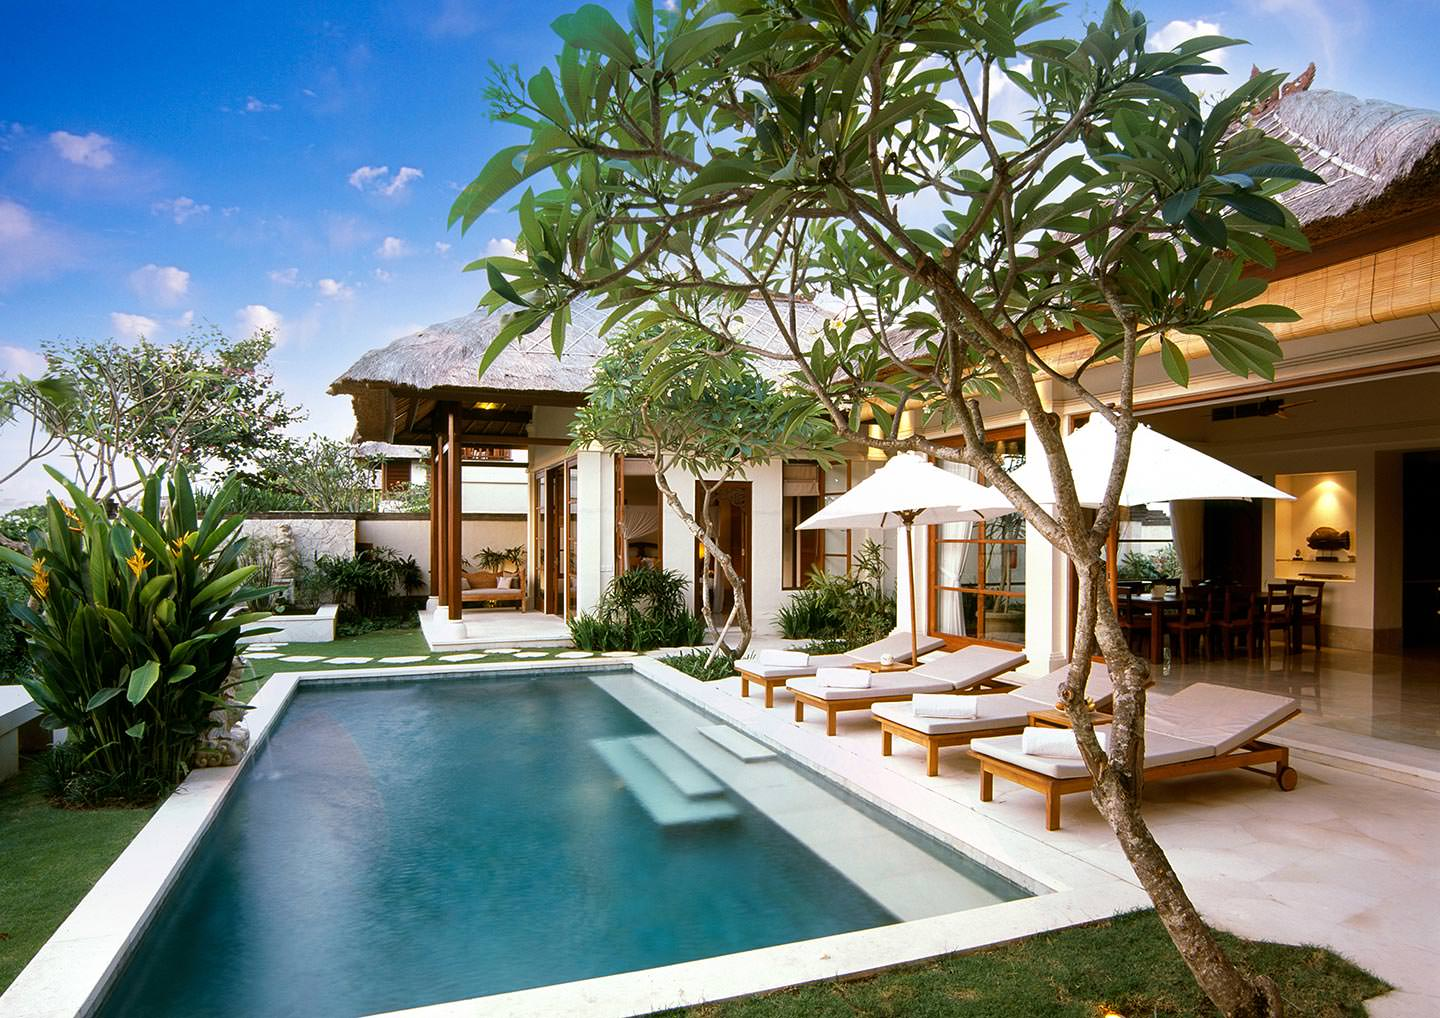 Book karma jimbaran 5 star hotel in jimbaran bay bali for Pool villa design